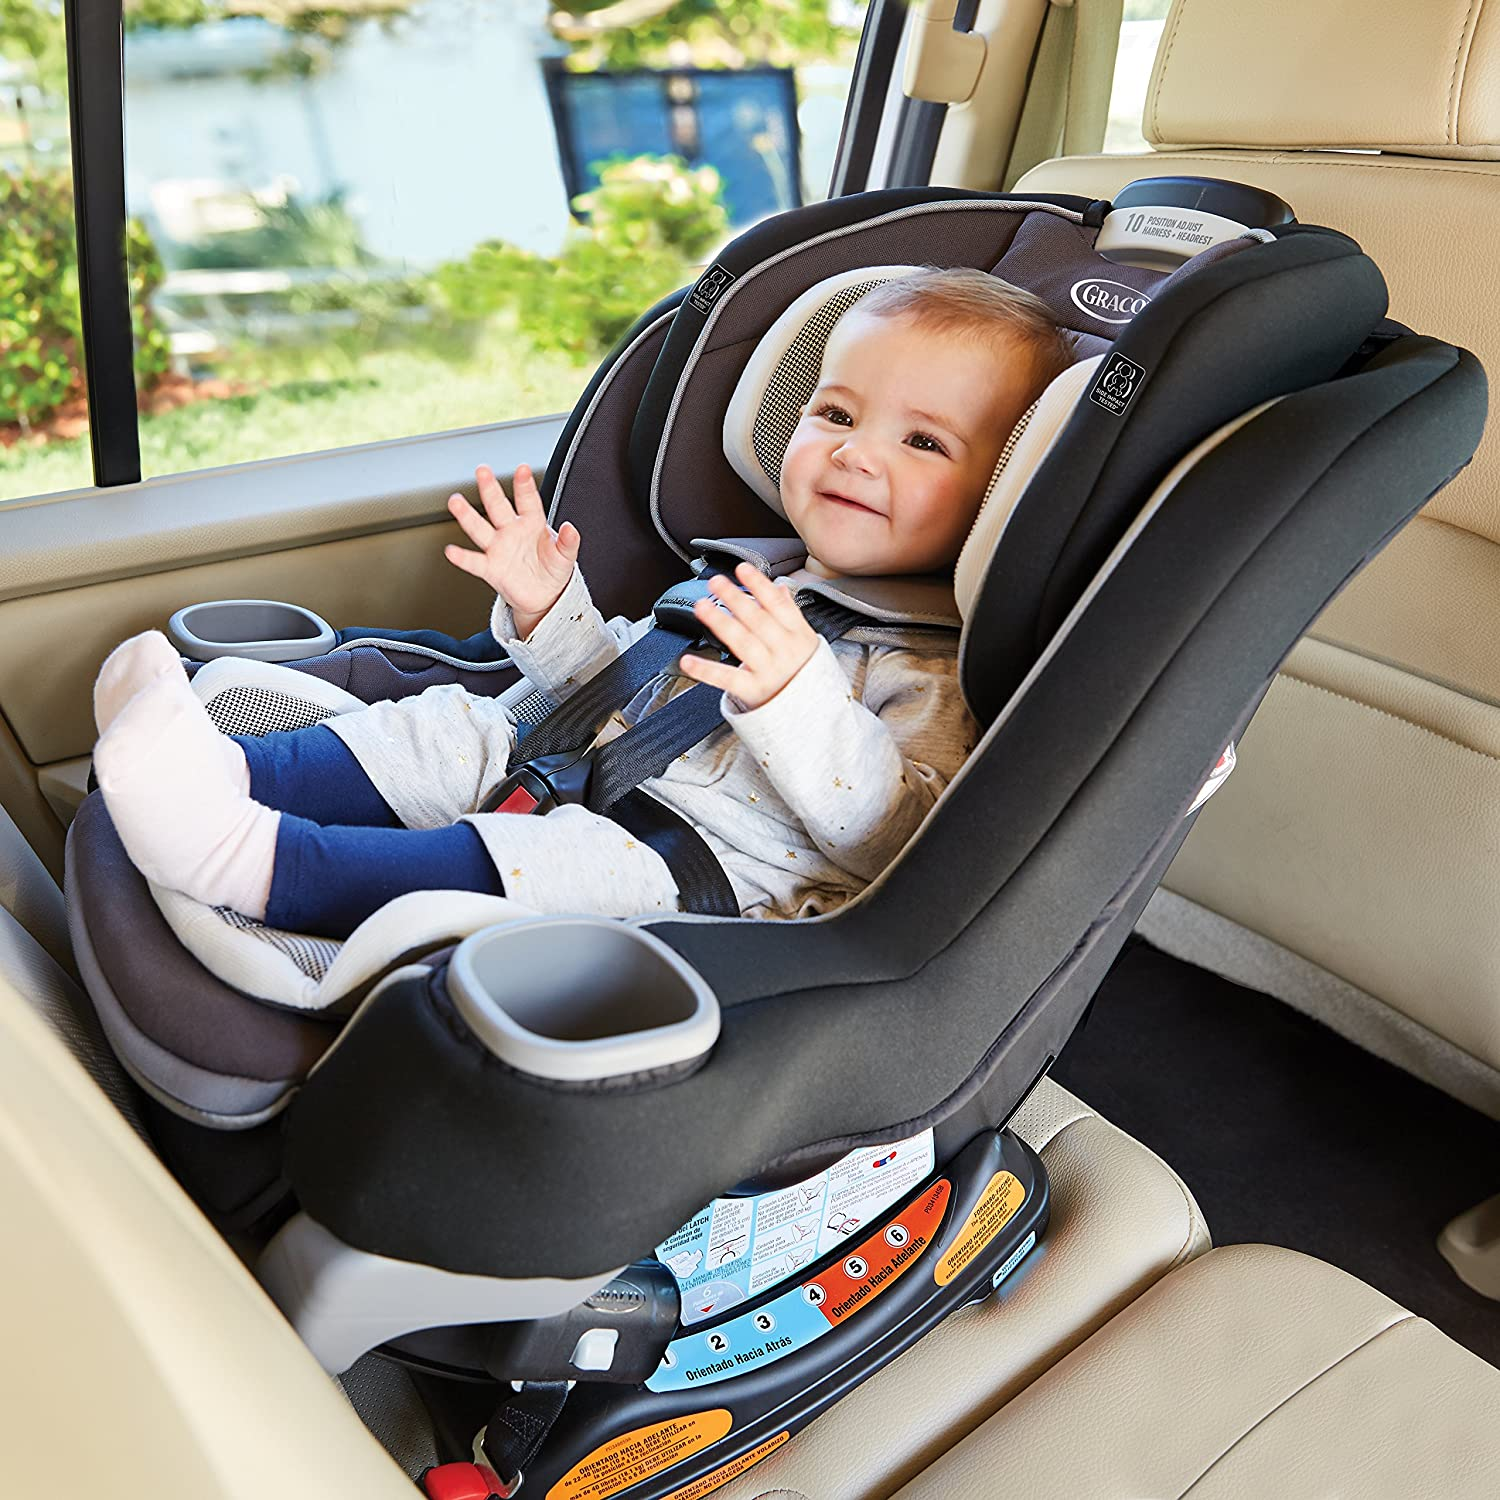 Graco Extend2Fit 3 In 1 Car Seat Featuring TrueShield Side Impact Protection